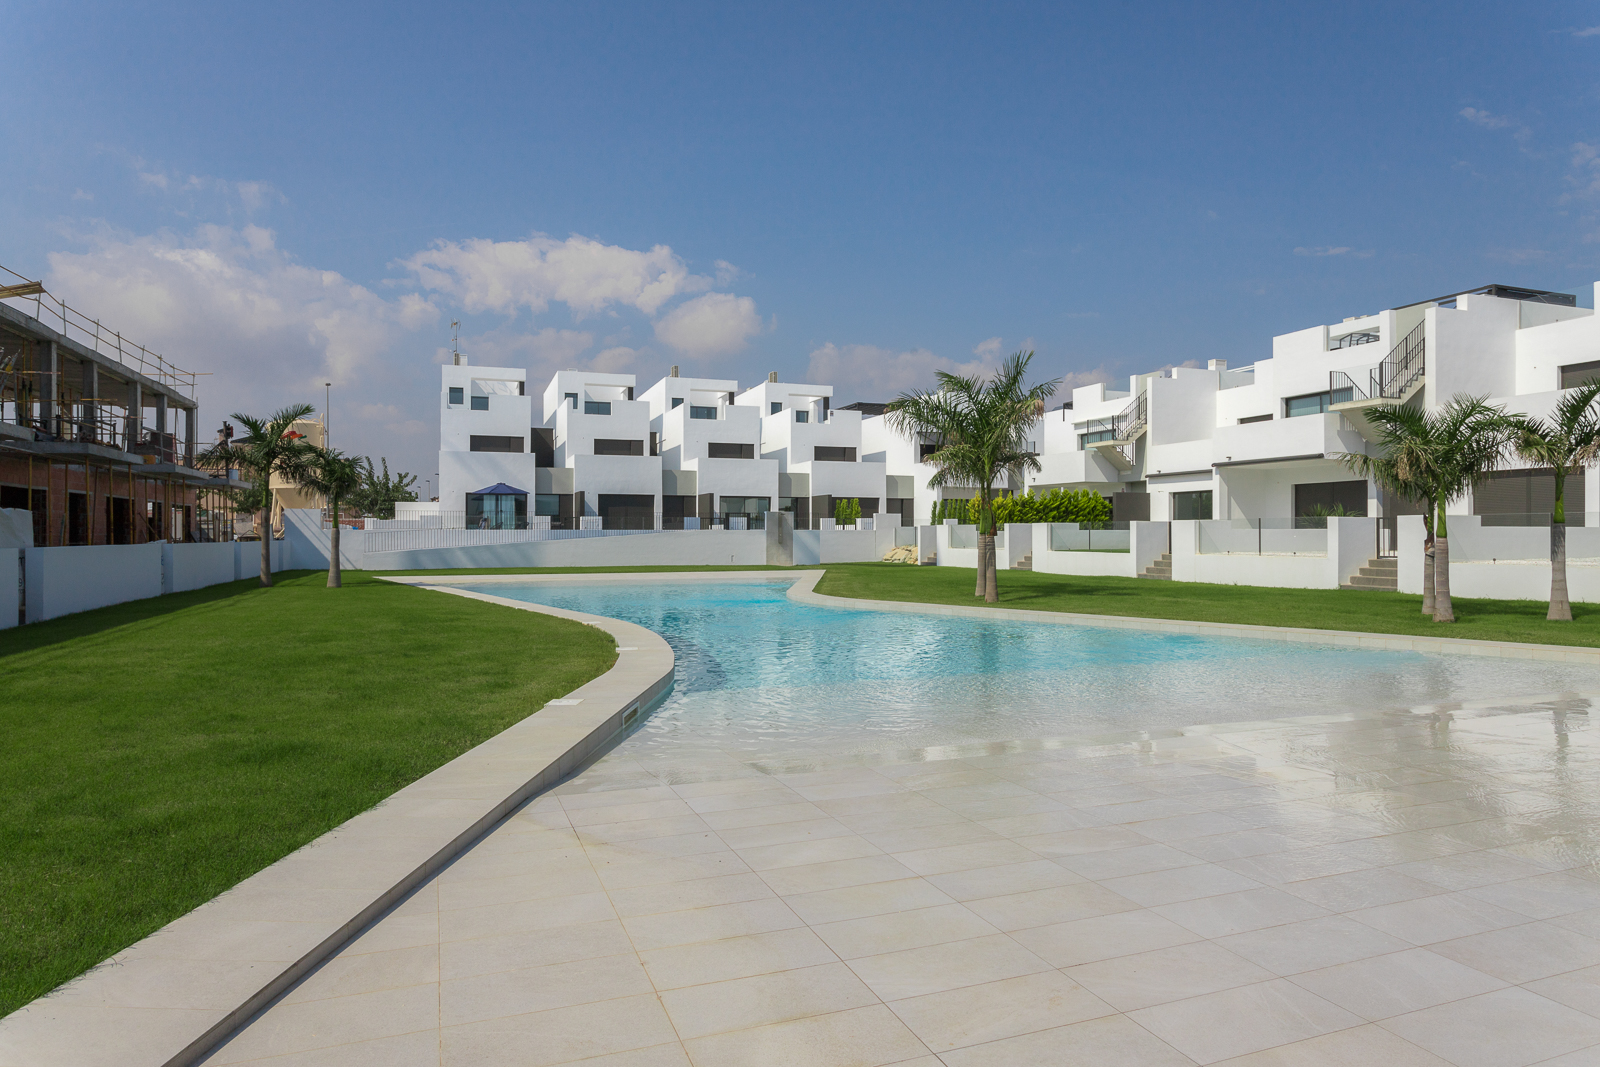 APARTMENTS IN TORRE DE LA HORADADA